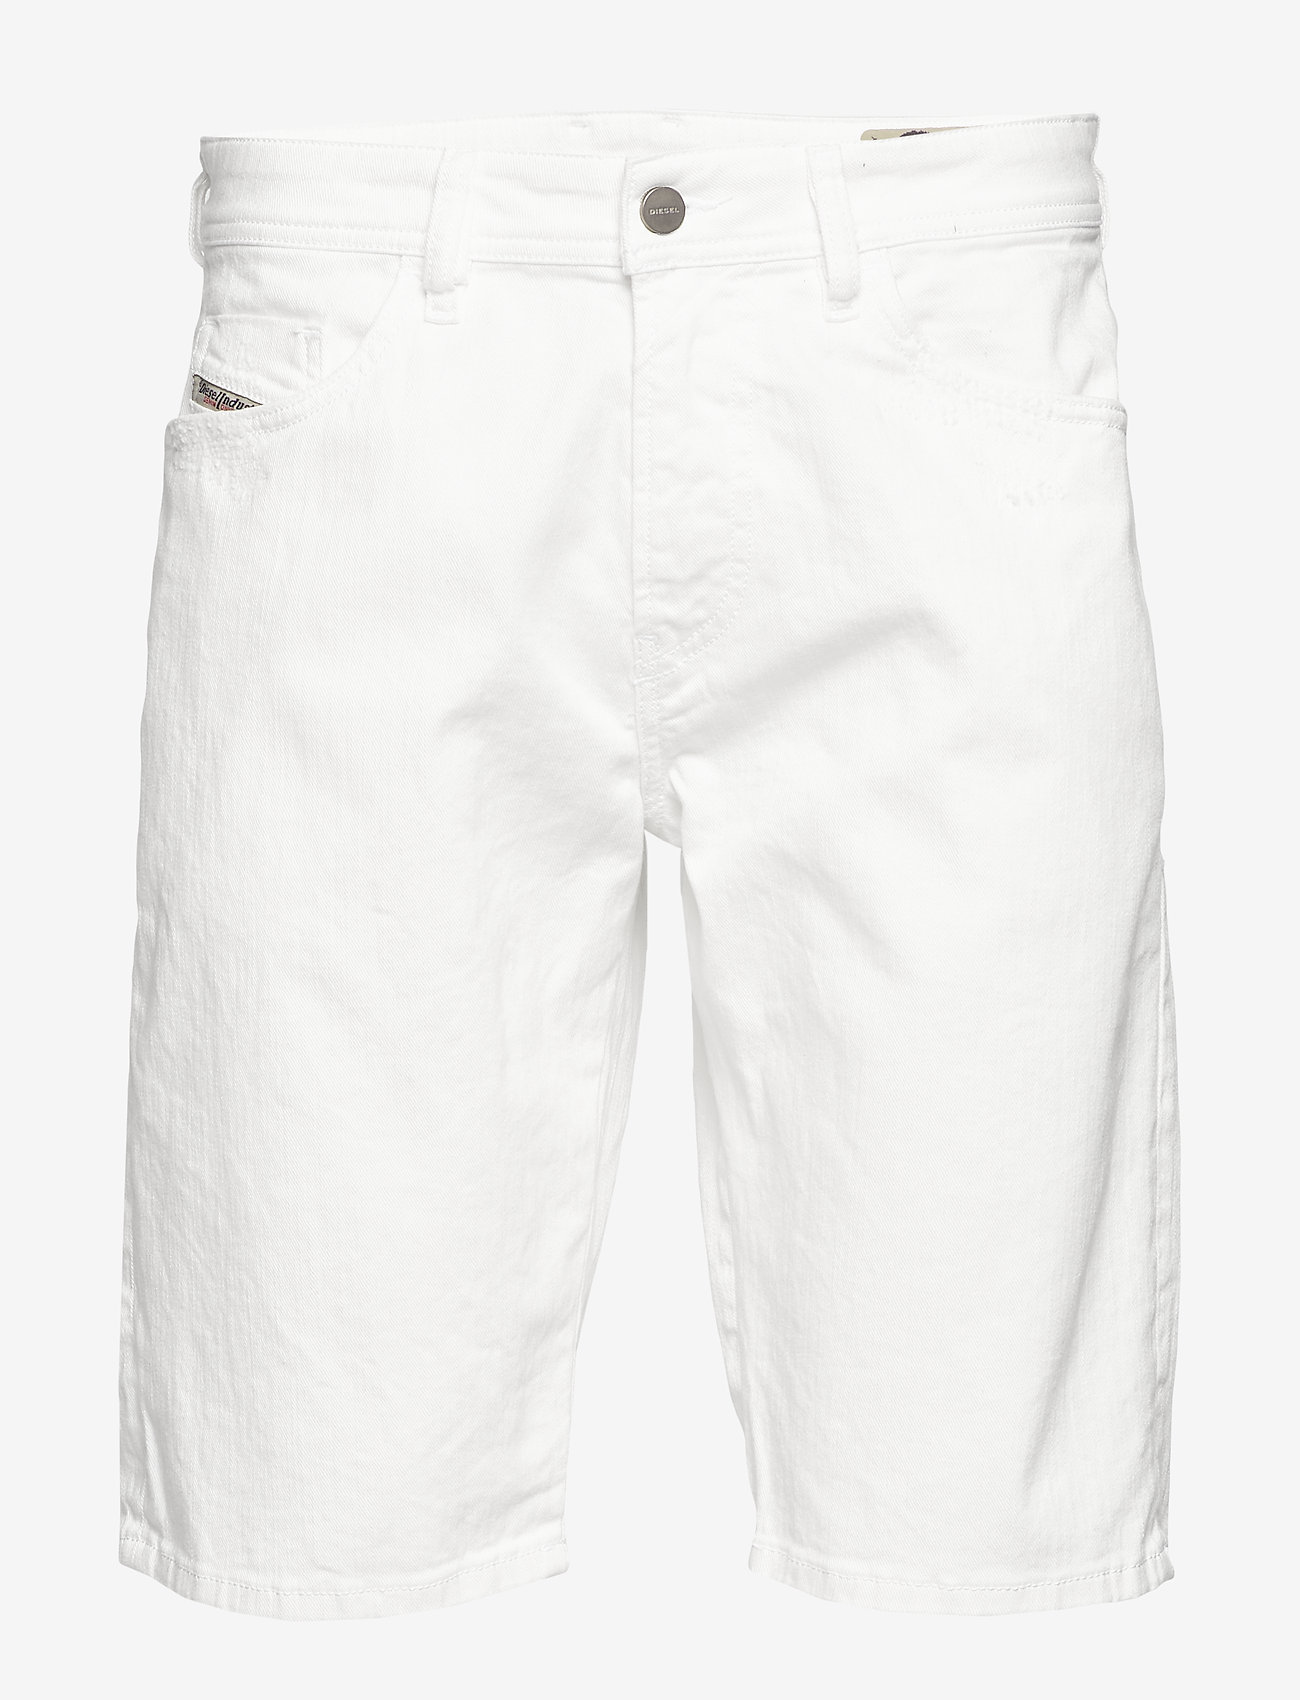 Diesel Men - THOSHORT SHORTS - farkkushortsit - bright white - 0